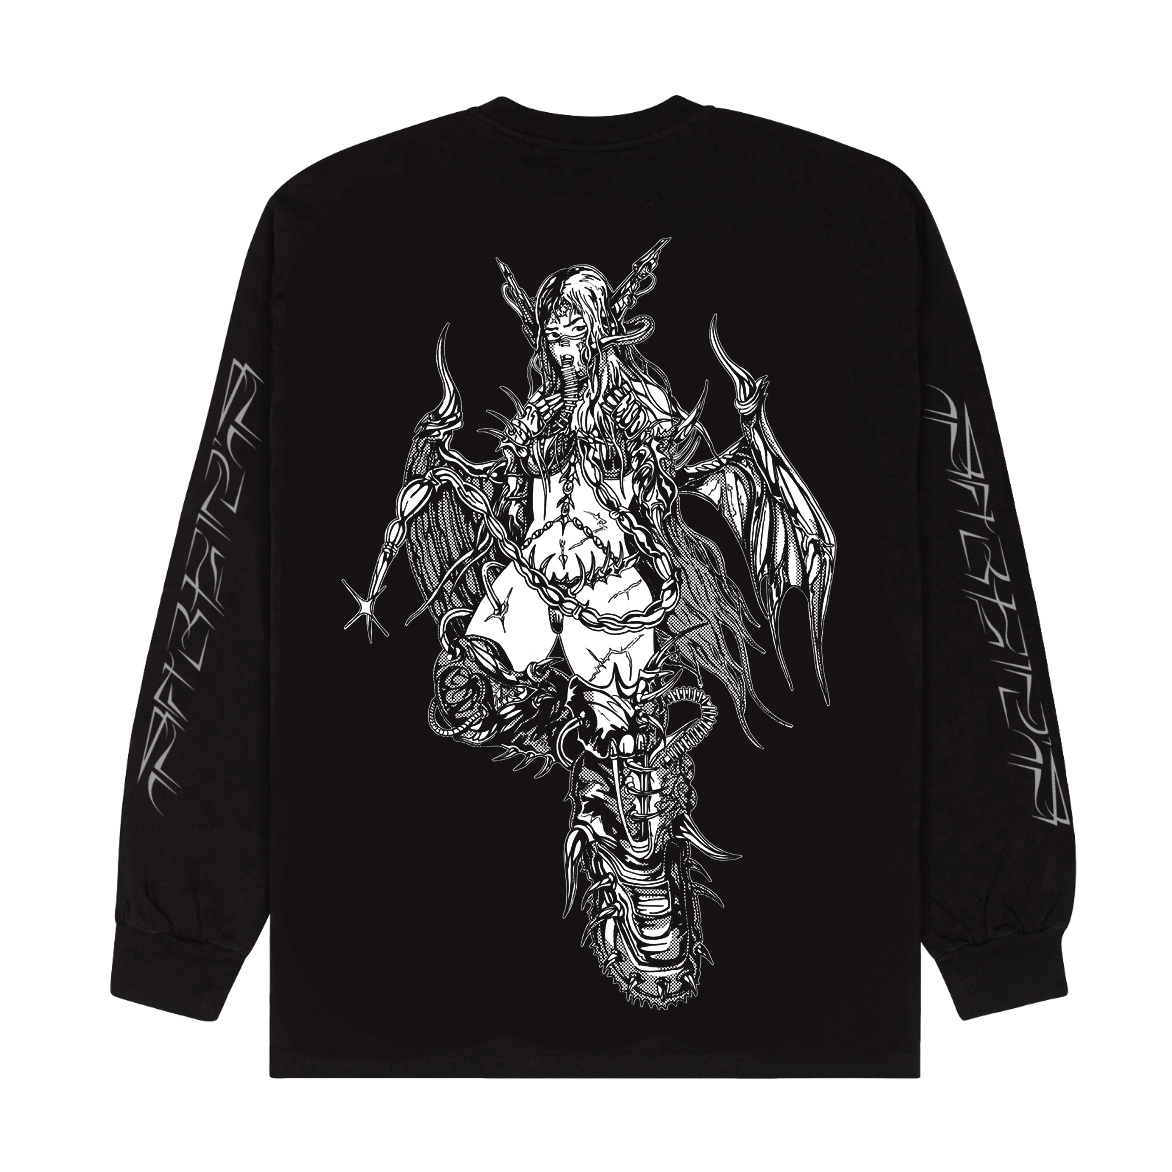 Limited Edition SIRENS Longsleeve - BACK